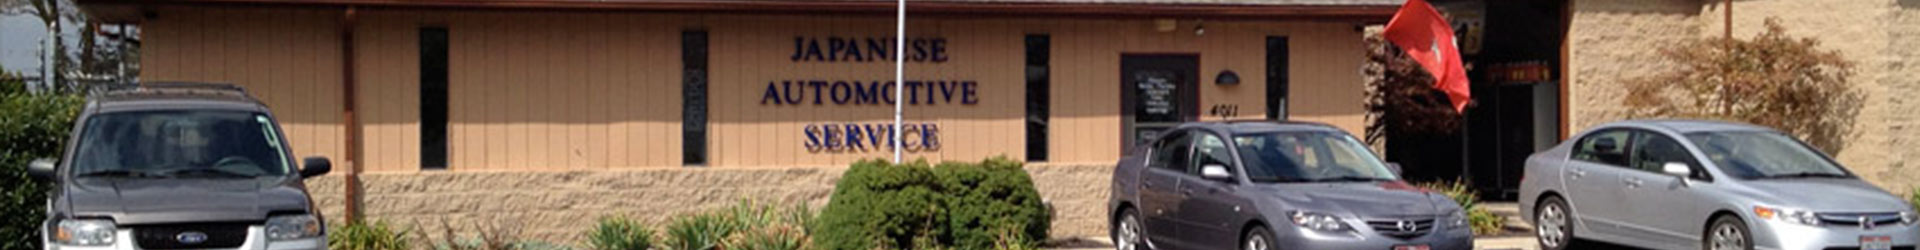 Japanese Automotive Service